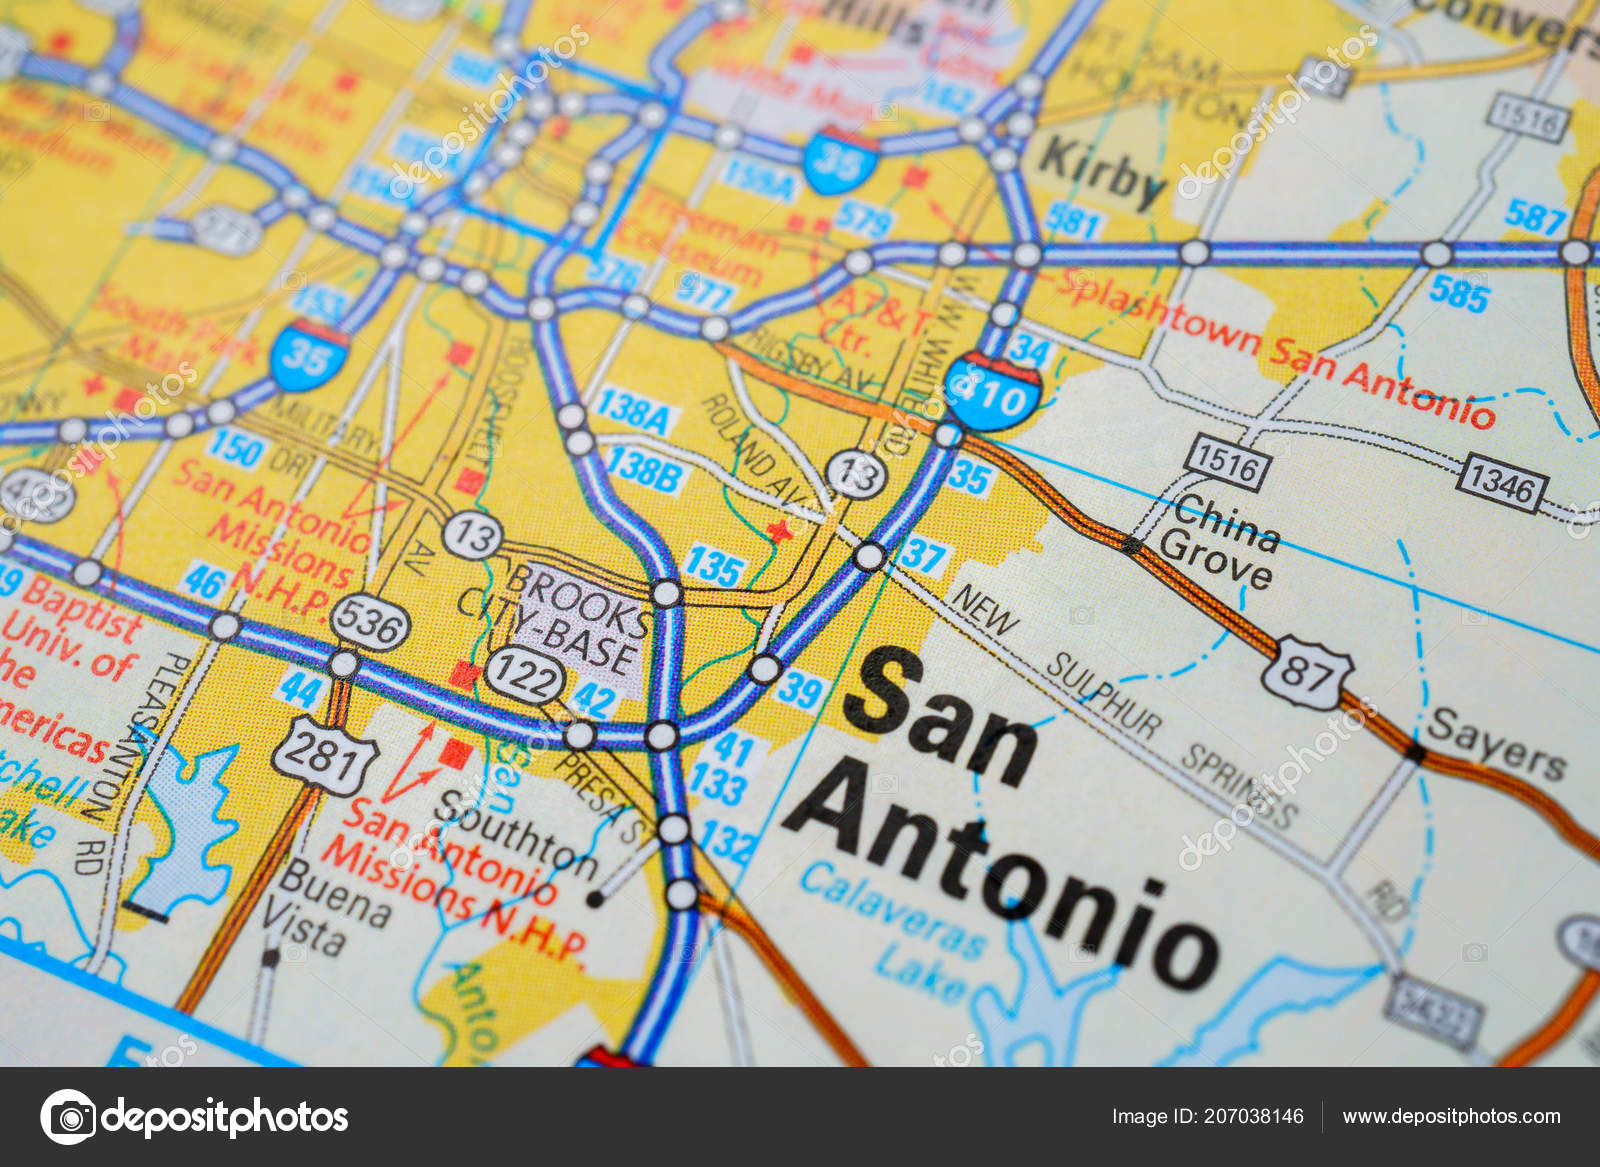 San Antonio Usa Map — Stock Photo © aallm #207038146 on texas on map, webster on map, new orleans on map, corpus christi on map, commerce city on map, golden state on map, portland on us map, auburn hills on map, quad cities on map, plano on map, houston on map, la venta on map, south bend on map, white plains on map, bexar county on map, kansas city on map, leon county on map, palo pinto county on map, abilene on map, st john's on map,